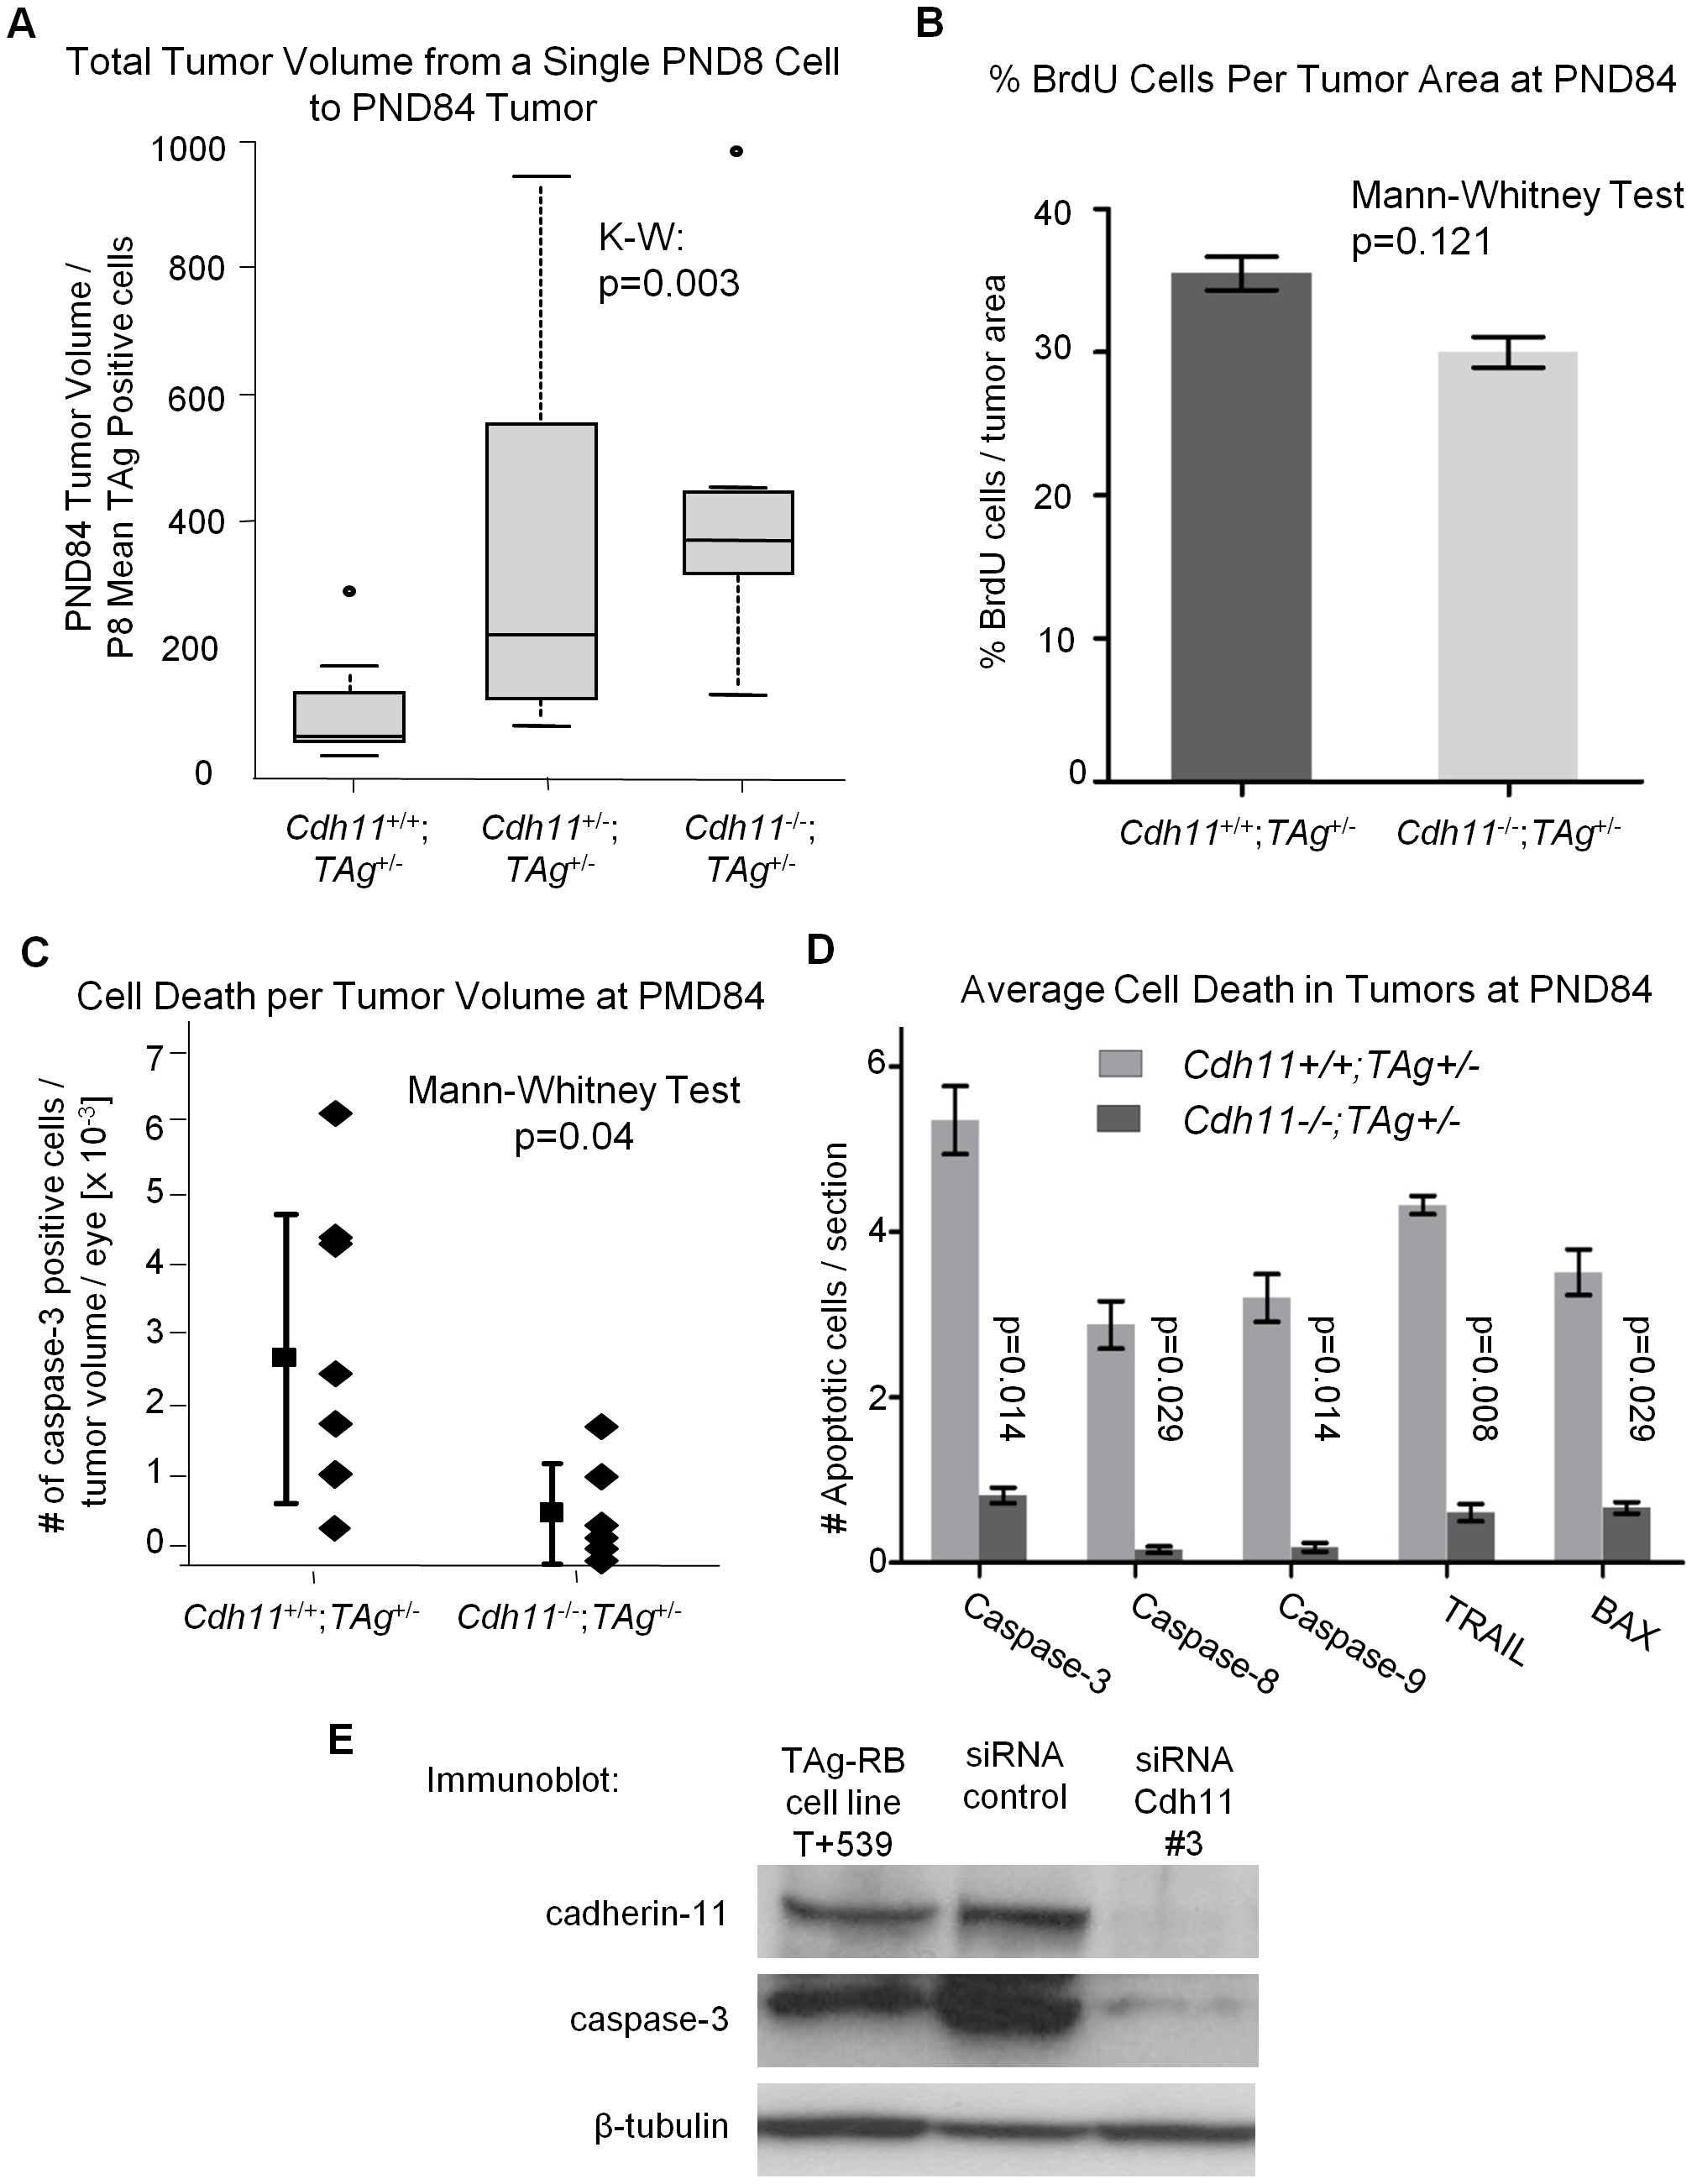 Allelic loss of <i>Cdh11</i> led to faster growing tumors due to decreased cell death.